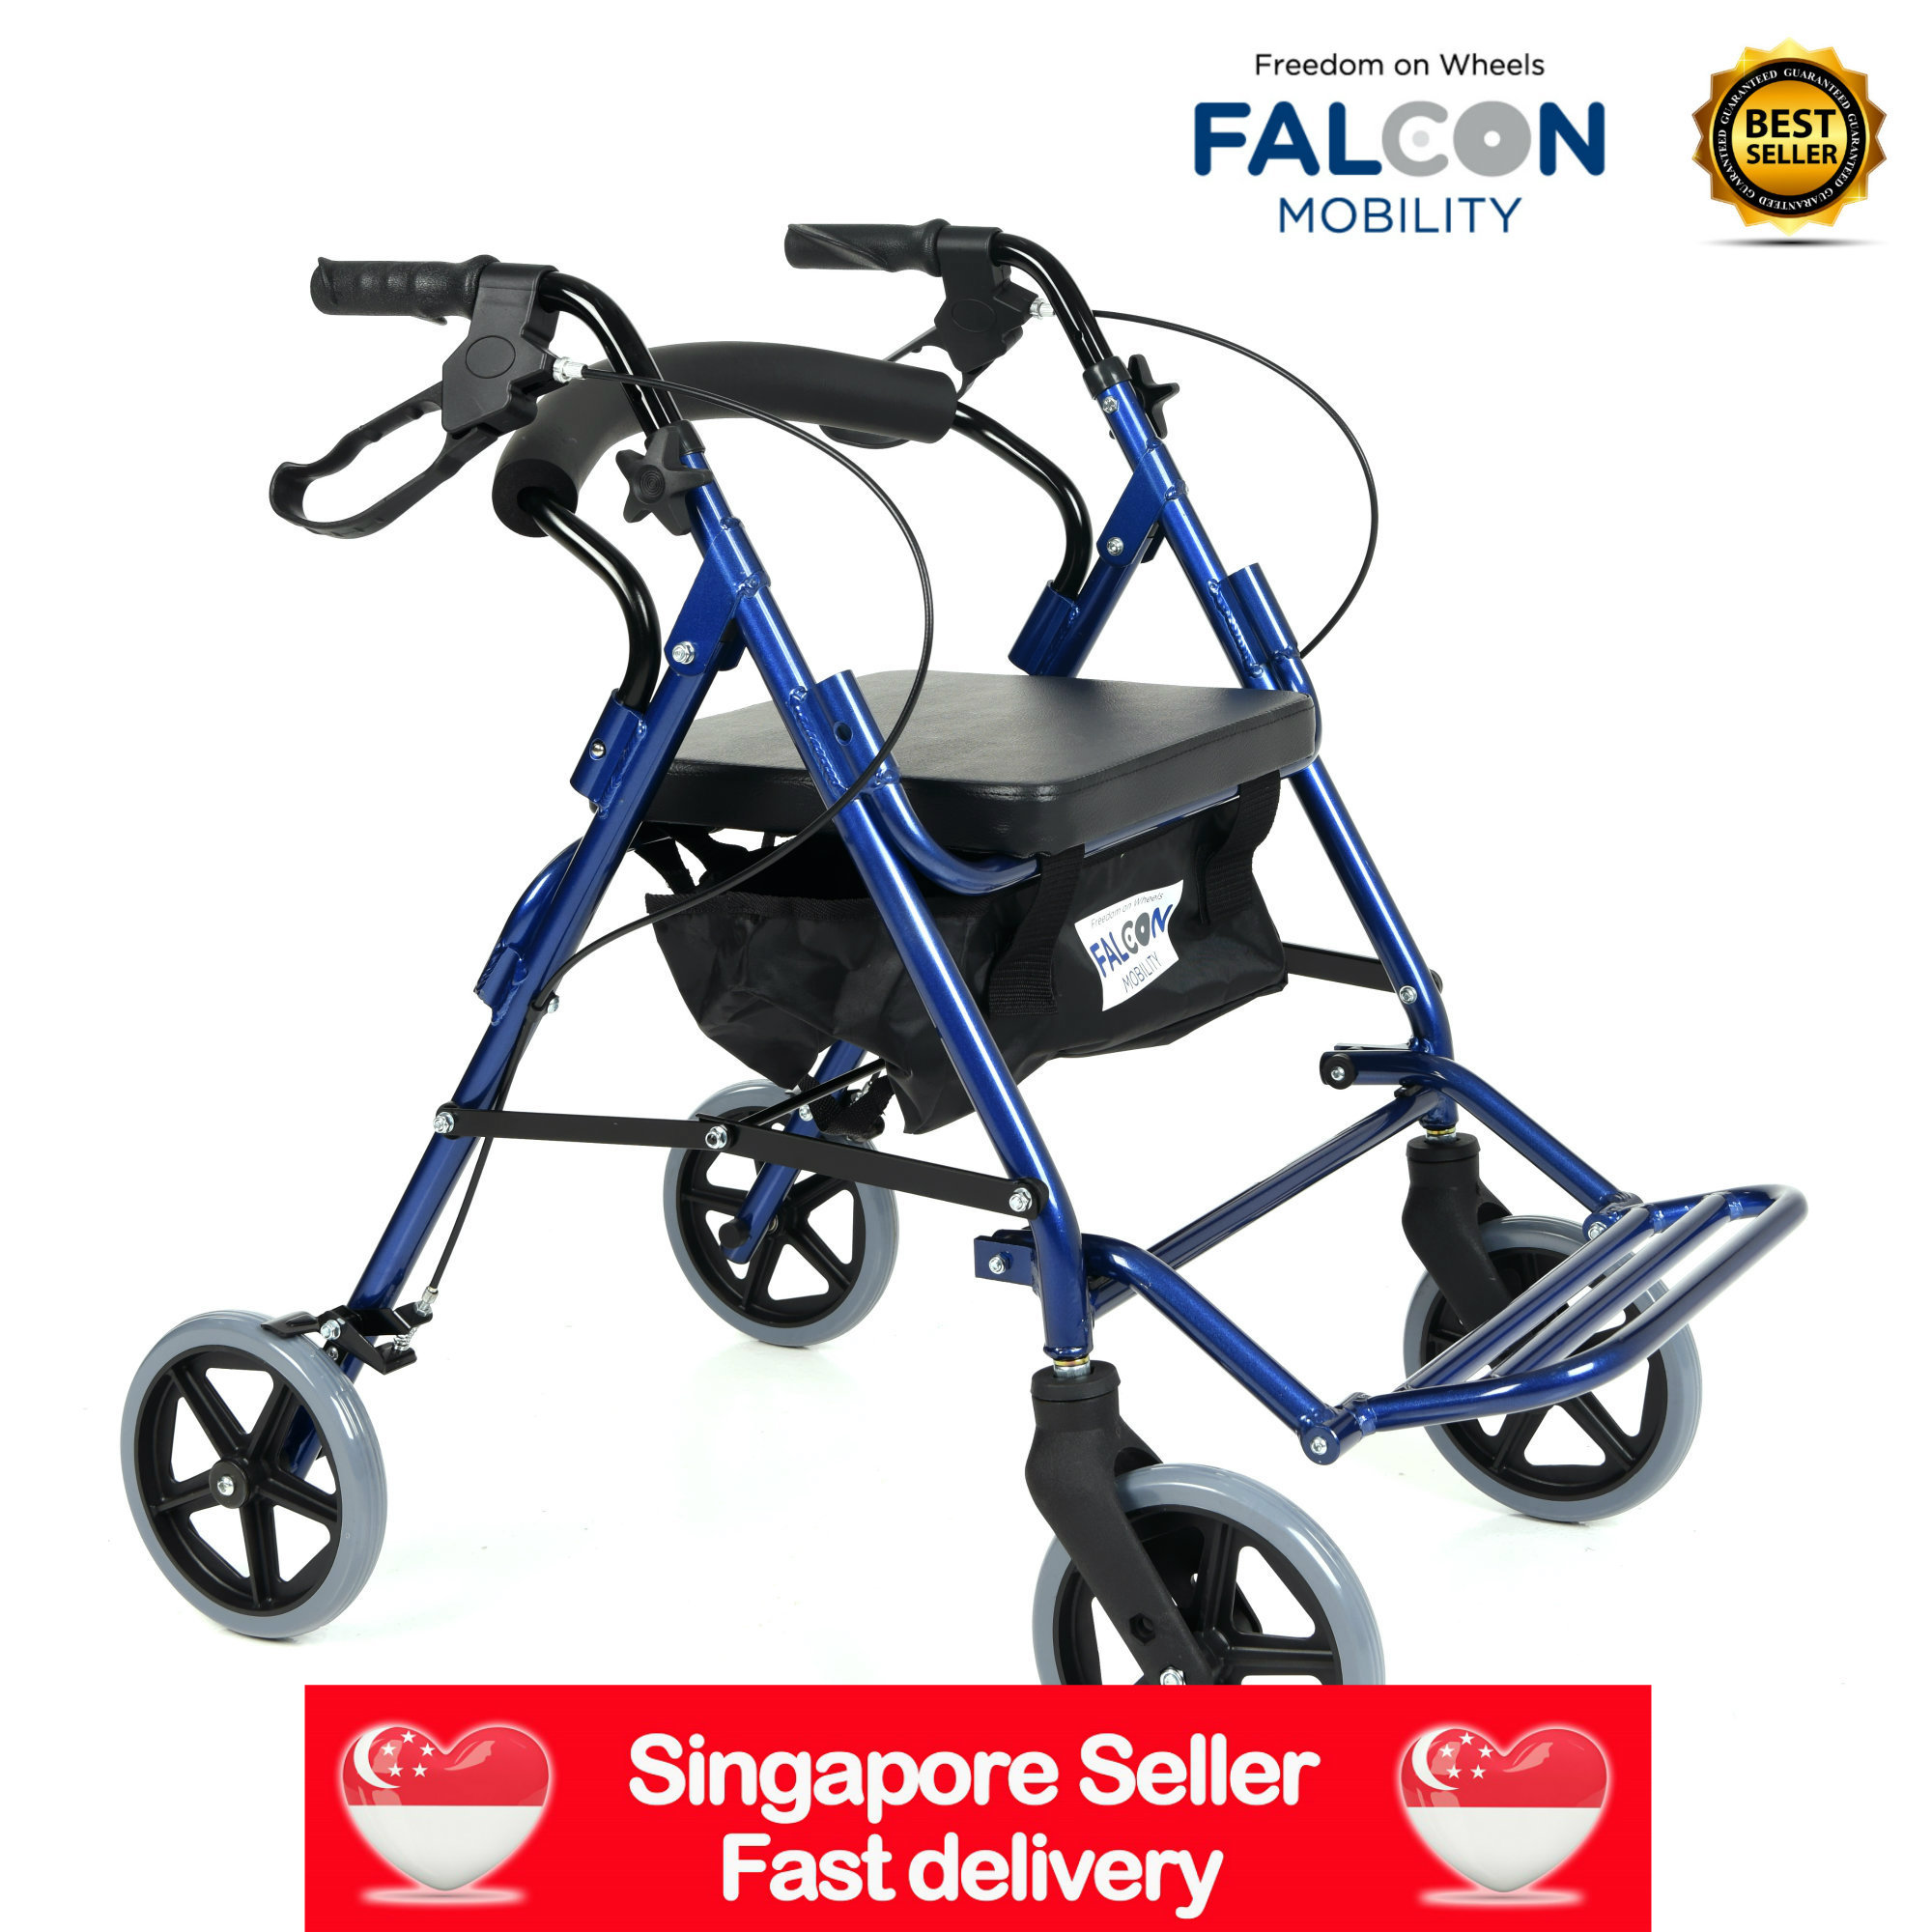 Falcon MobilityDUAL FUNCTION 2-IN-1 ROLLATOR / TRANSPORT CHAIR